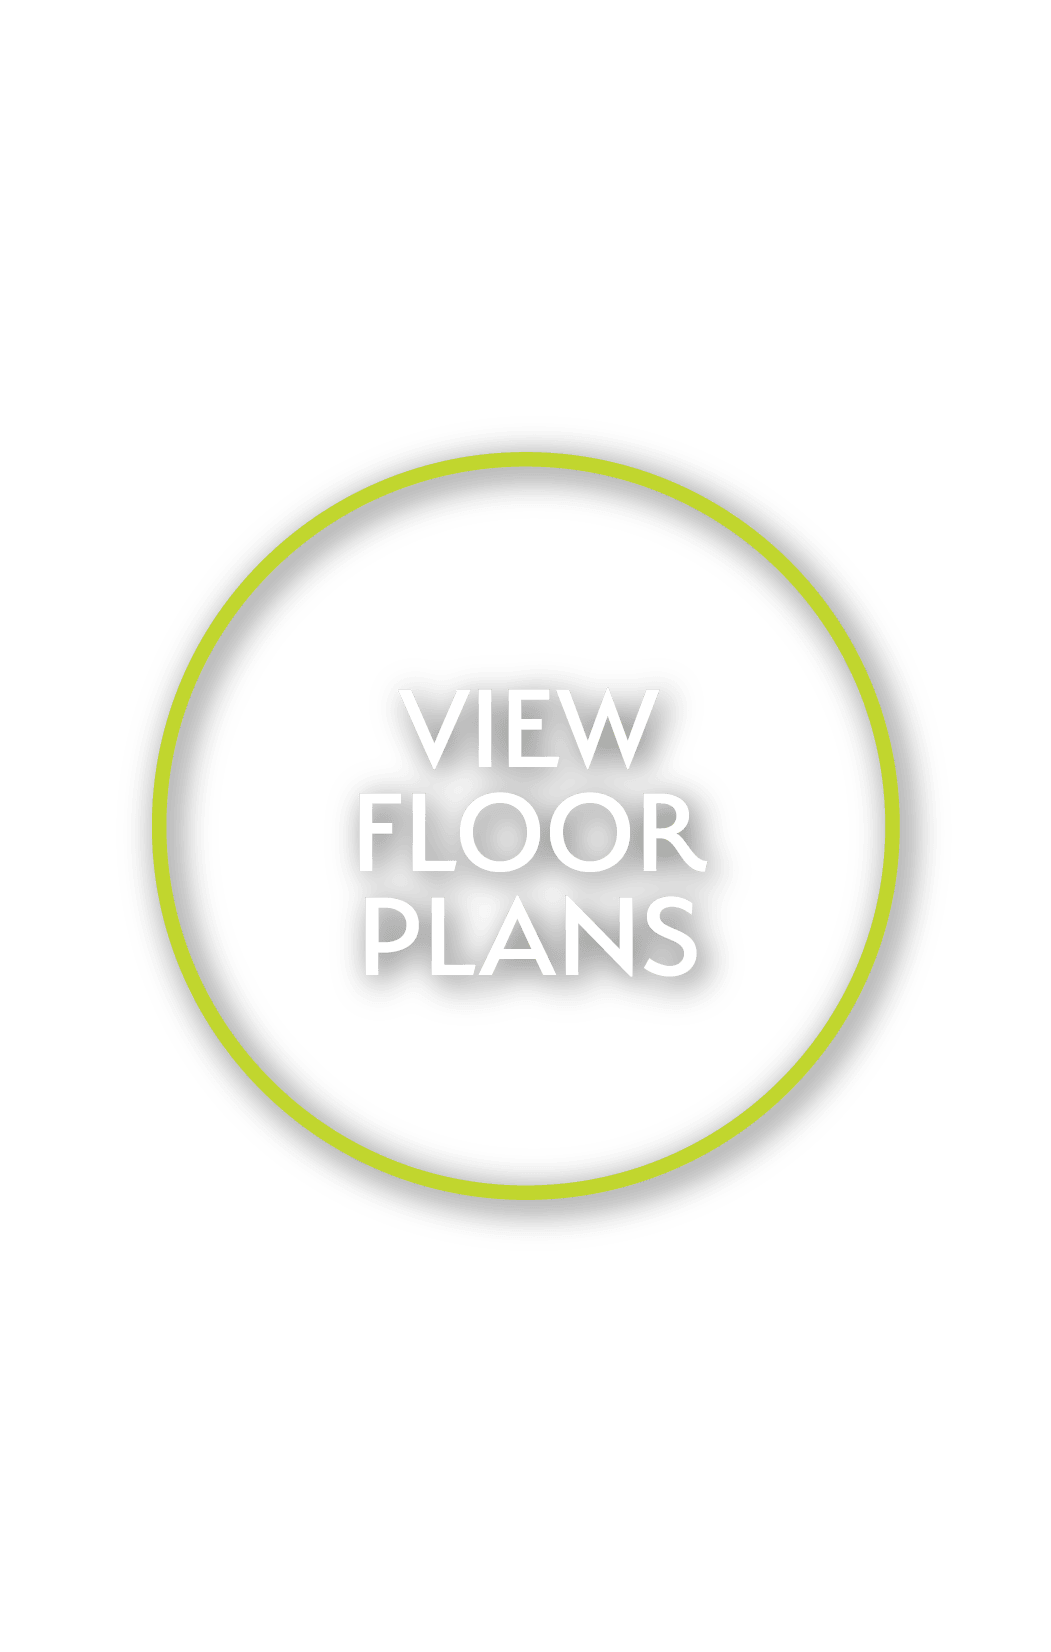 View floor plans at Aspire at 610 in Houston, Texas